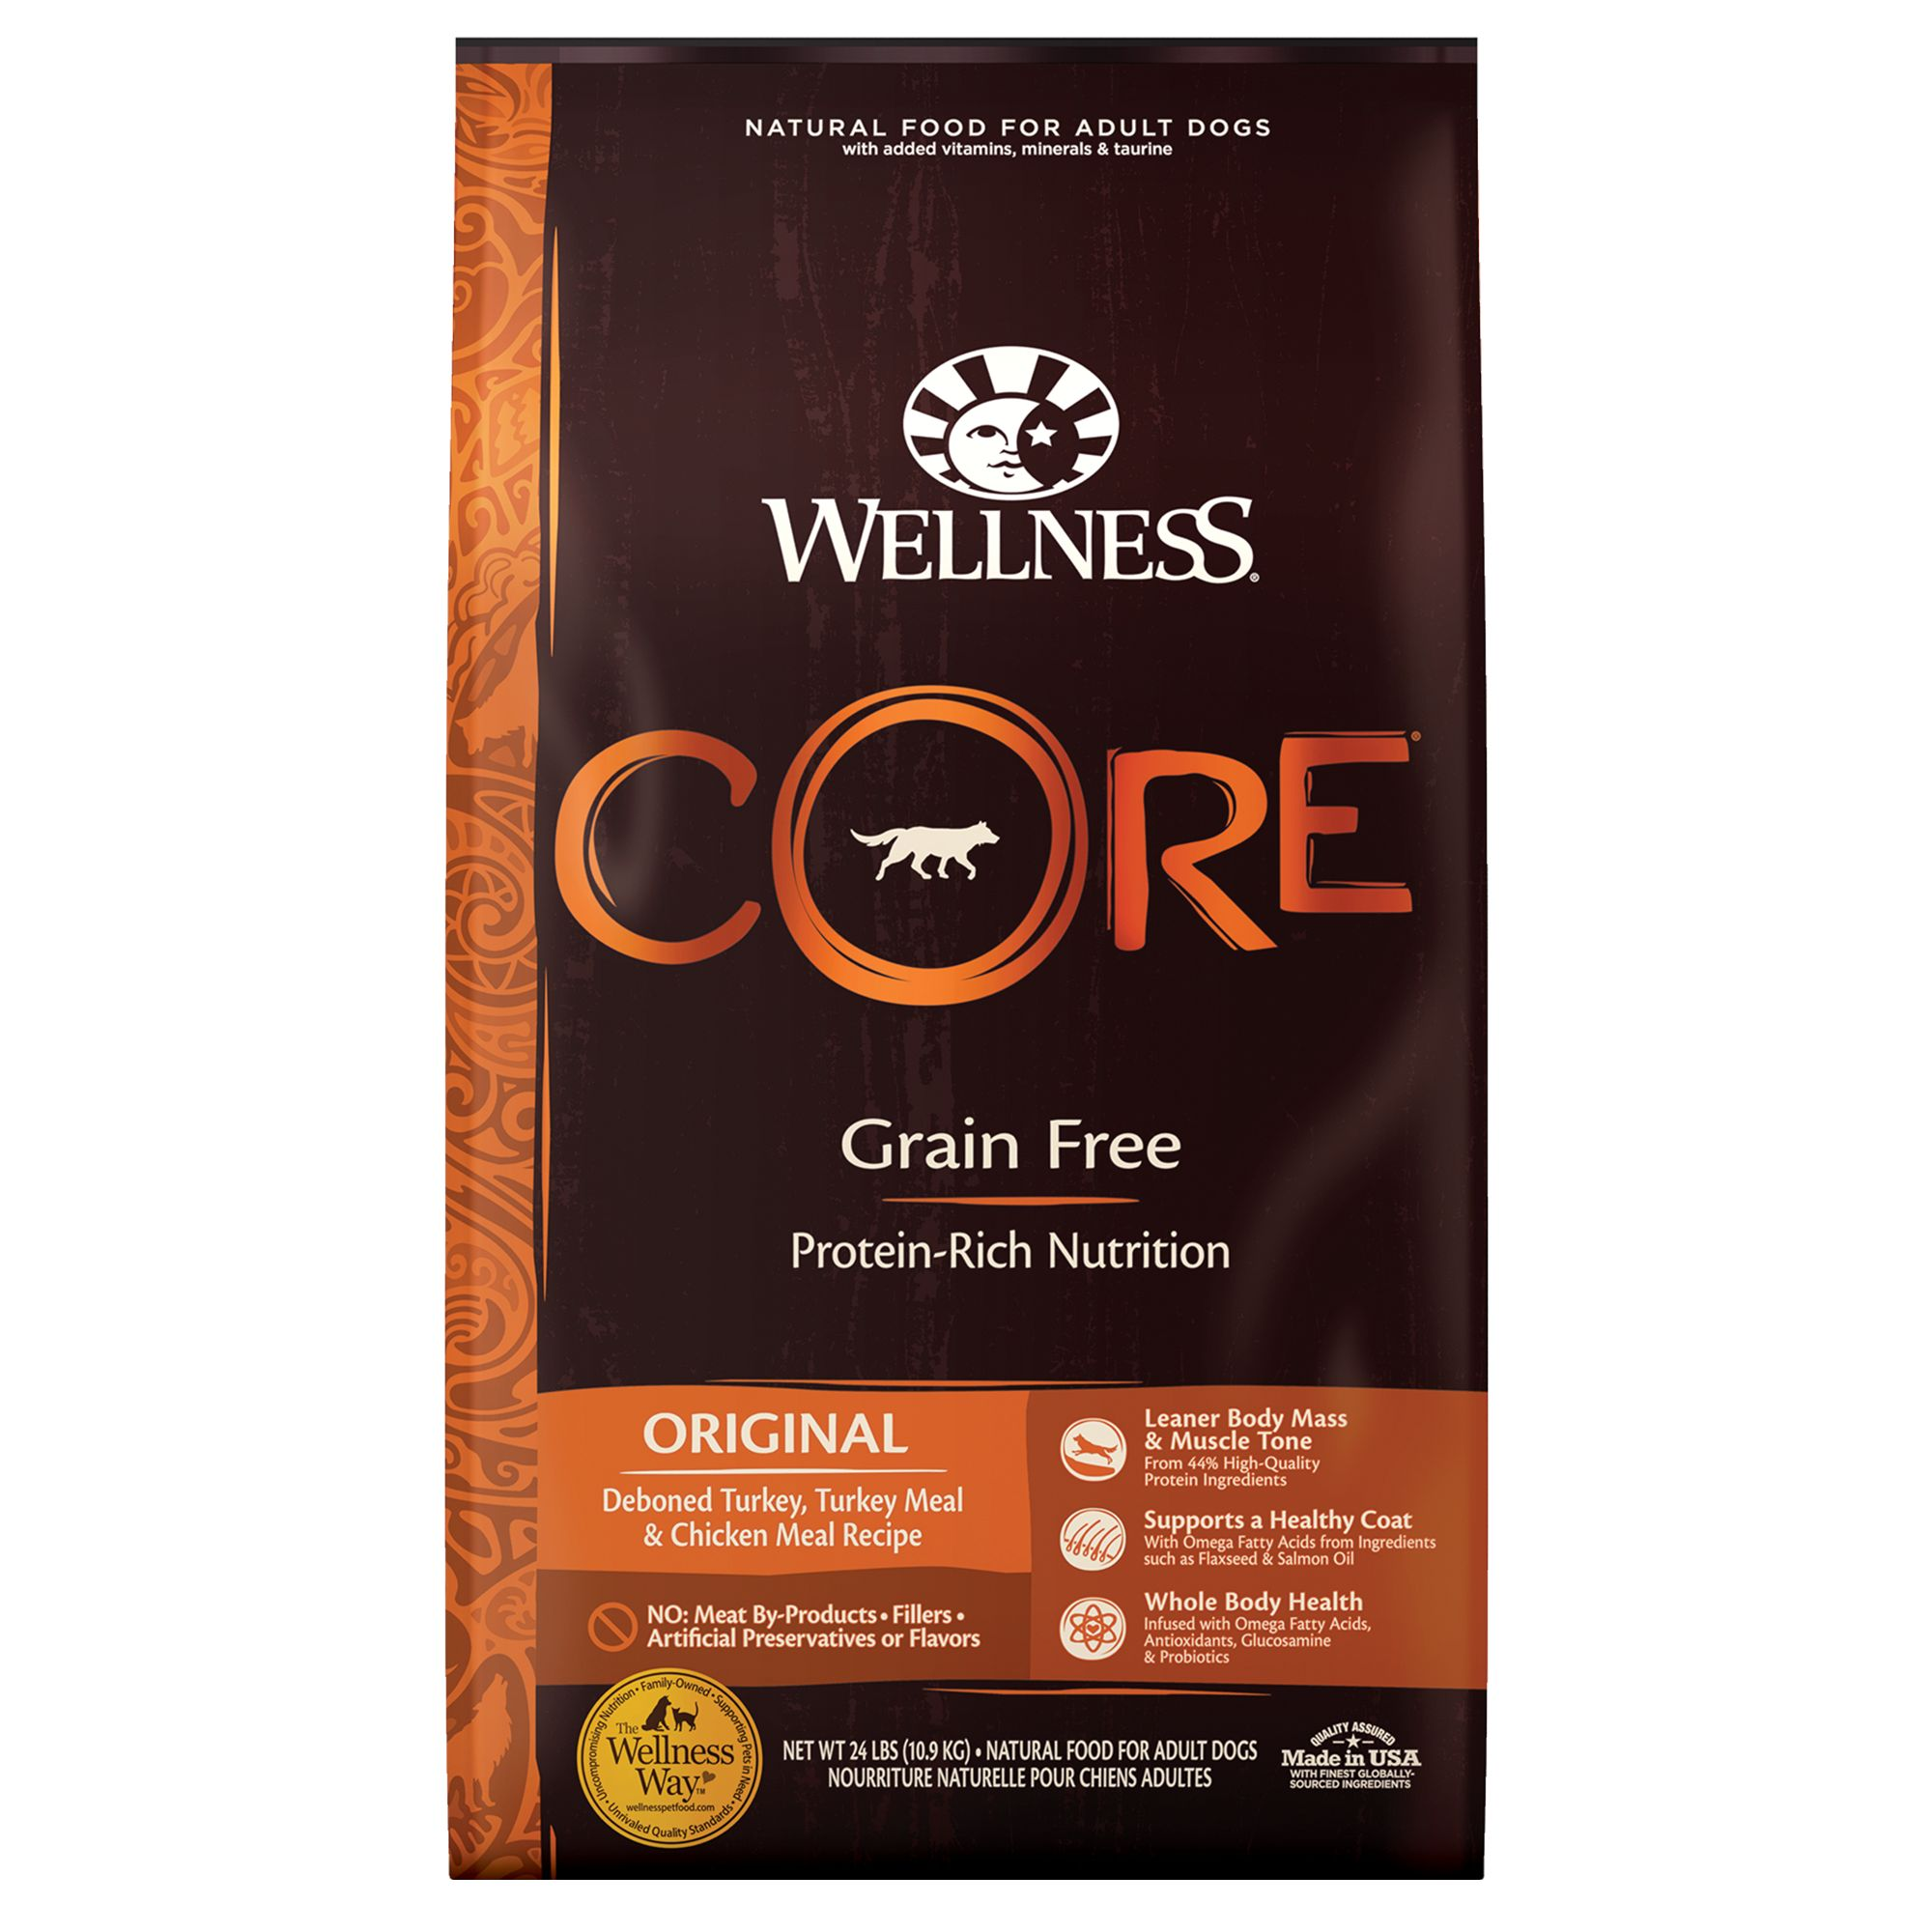 Wellness Core Adult Dog Food - Natural, Grain Free, Original Formula size: 24 Lb, Turkey, Chicken, Kibble 5249049